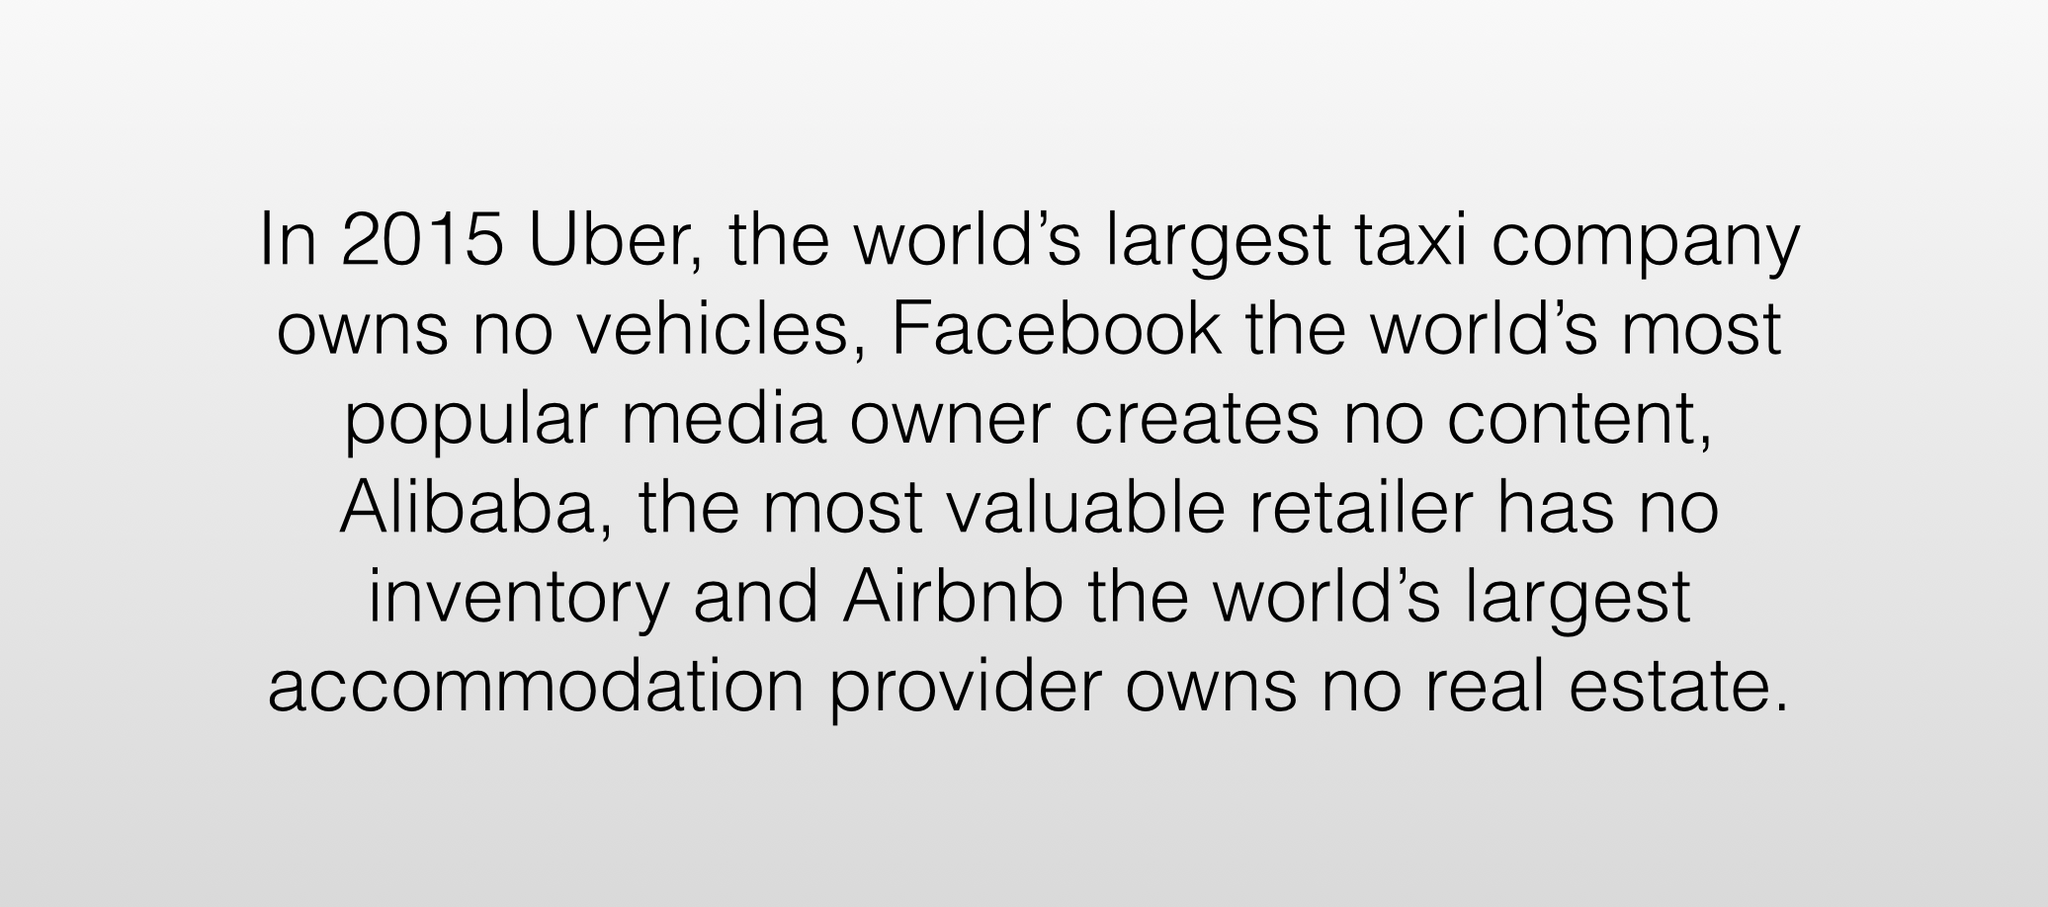 That viral post that everybody was sharing saying that Facebook has the most content and writes none. Airbnb has no hotels and Uber has no vehicles